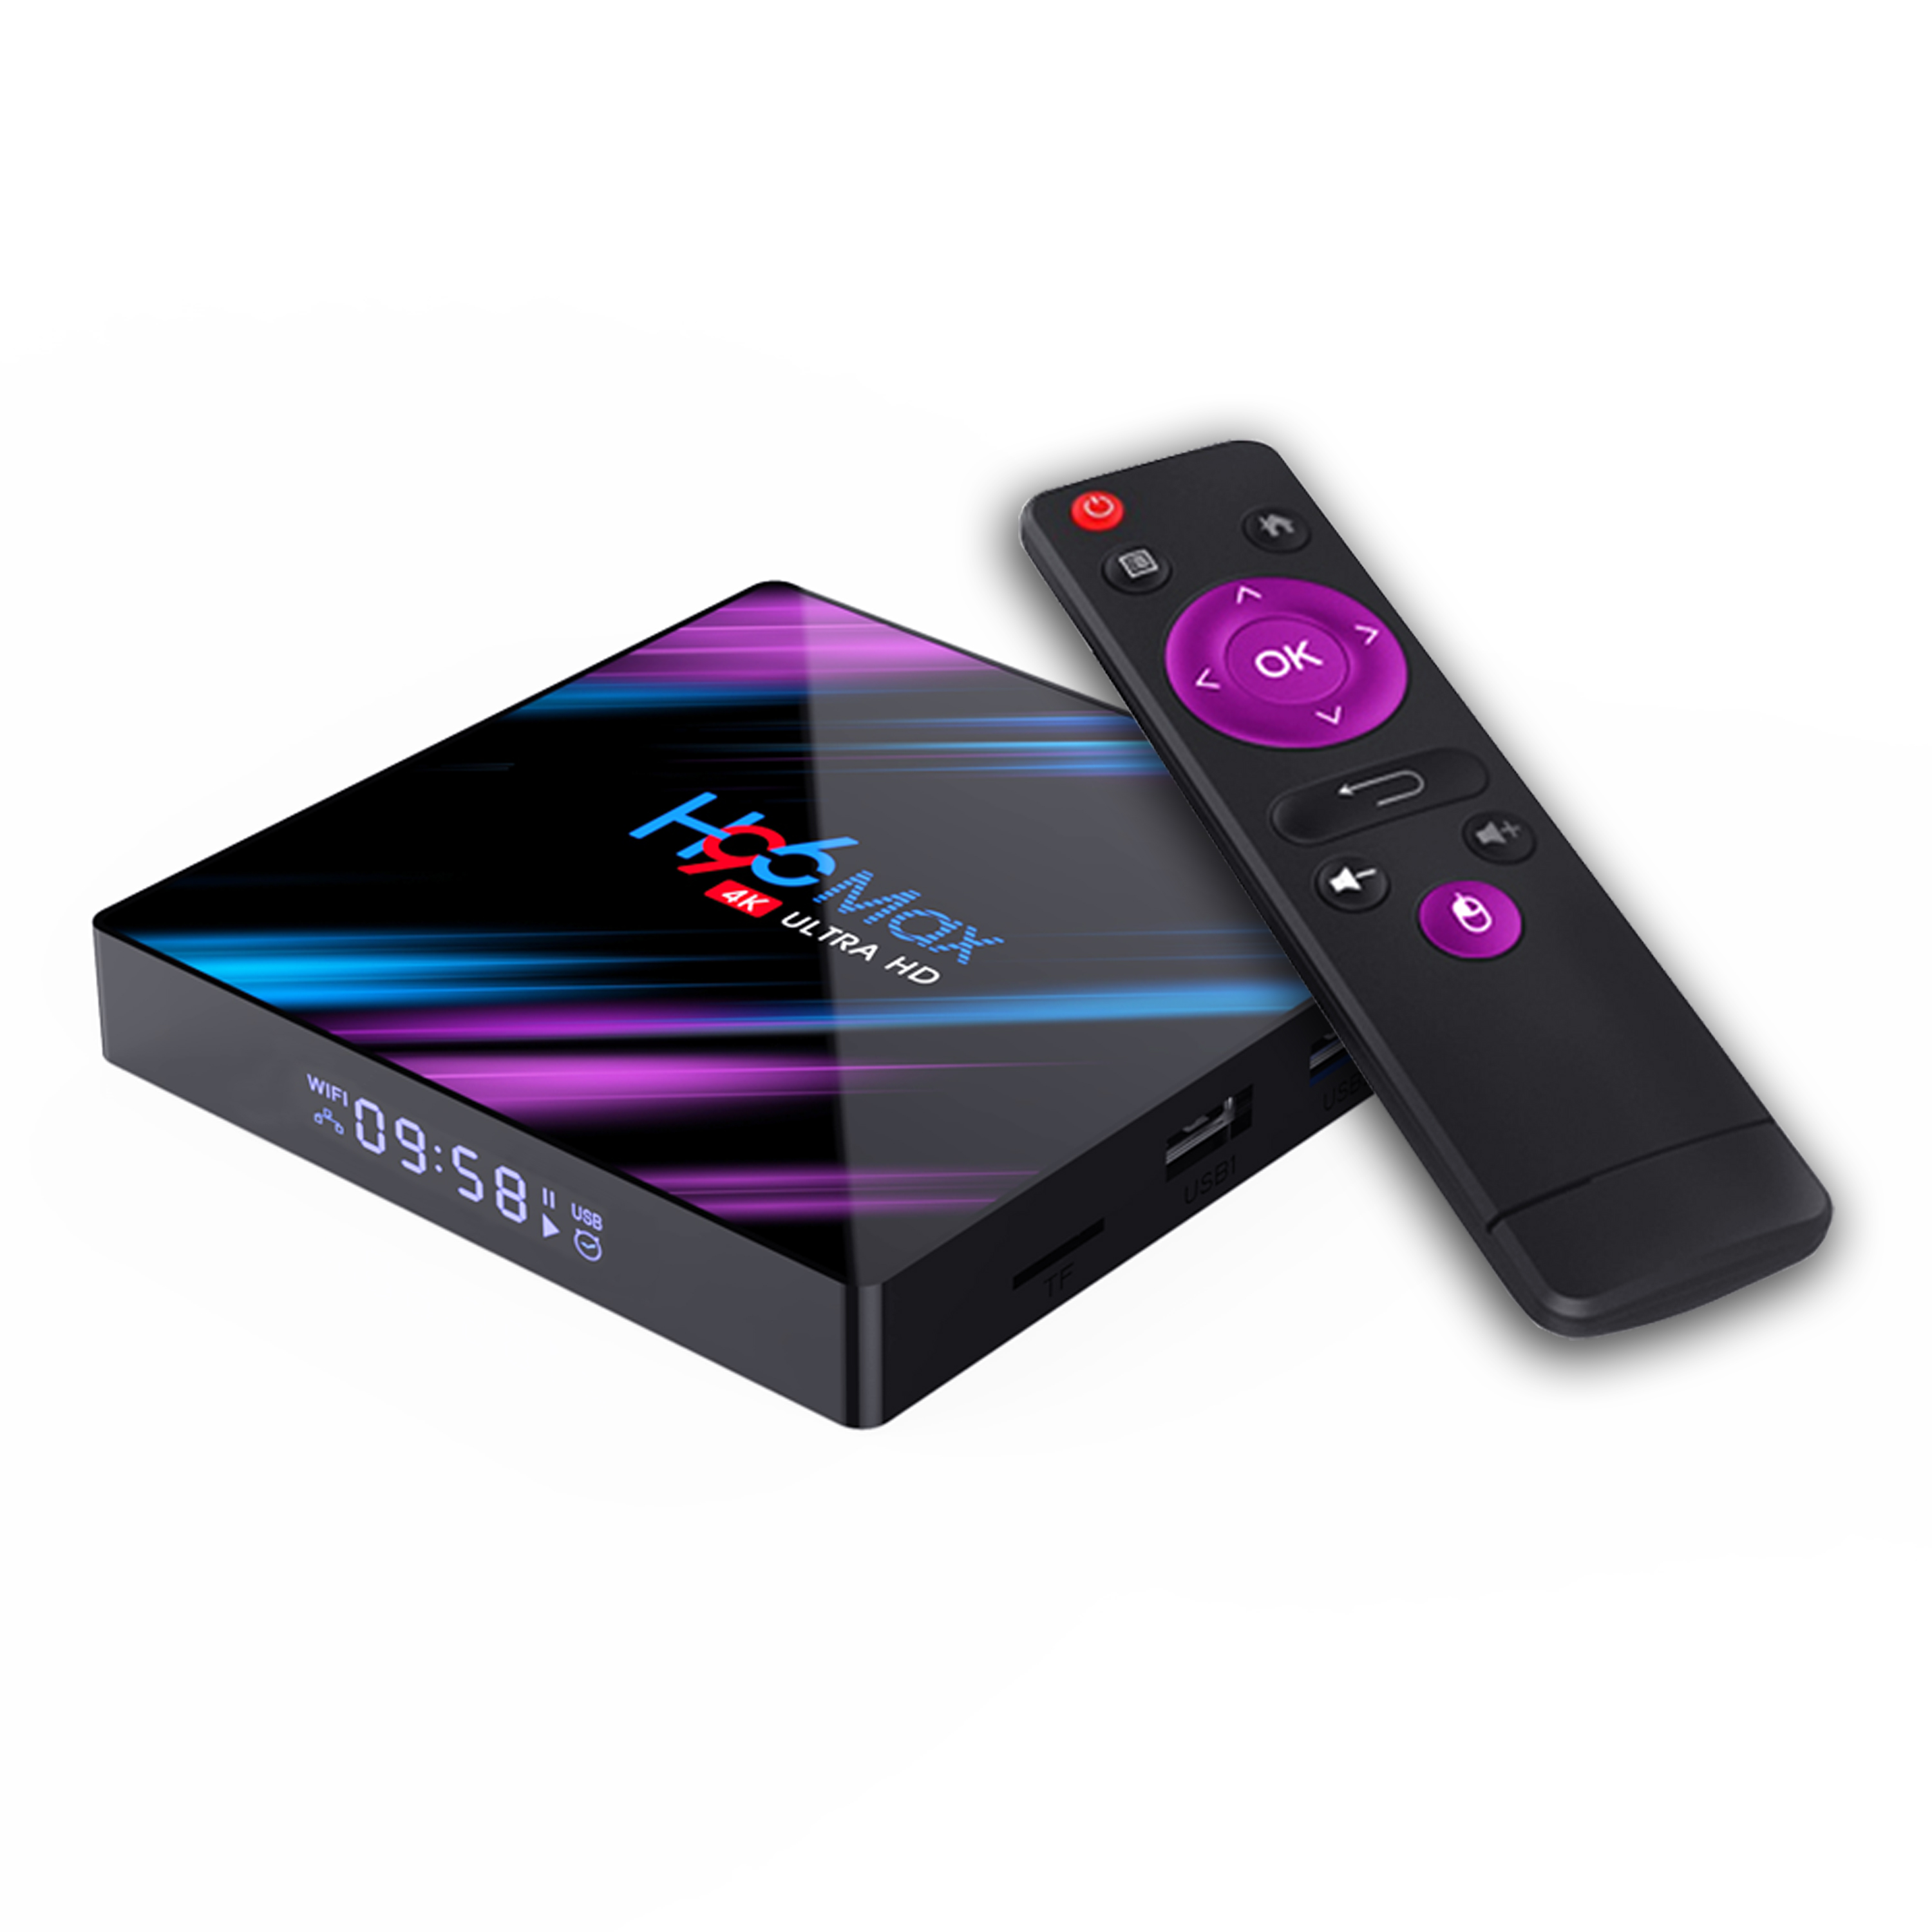 2019 Newest Rockchip H96 MAX RK3318 TV Box 2gb 16gb/4gb 32gb/ 4gb 64gb Android 9.0 TV Box With LED Screen Ultra HD video <strong>player</strong>